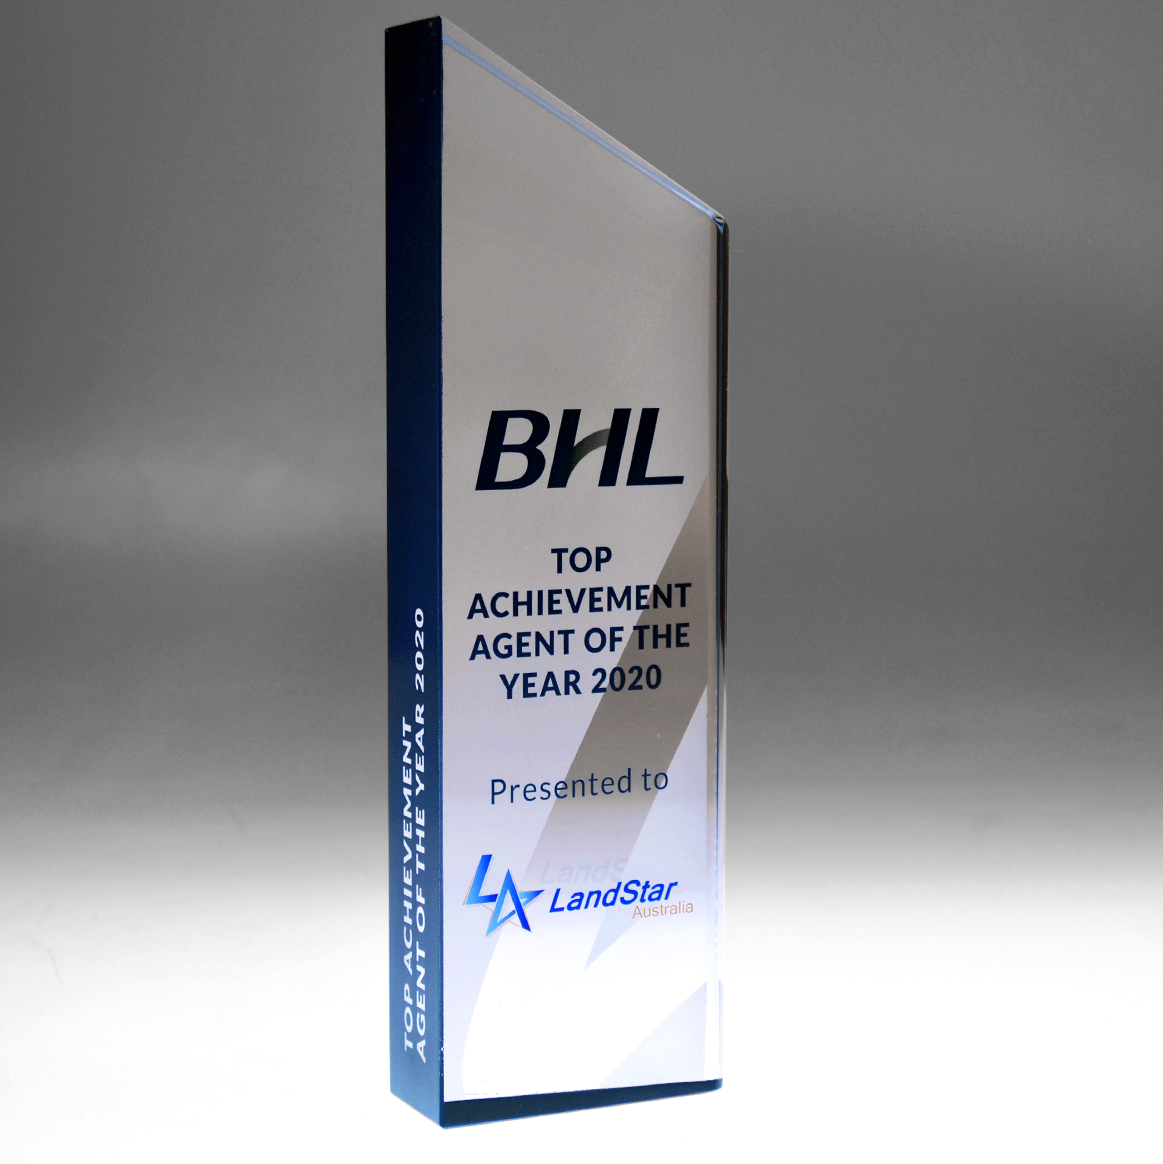 BHL Crystal Accent by Mint Awards